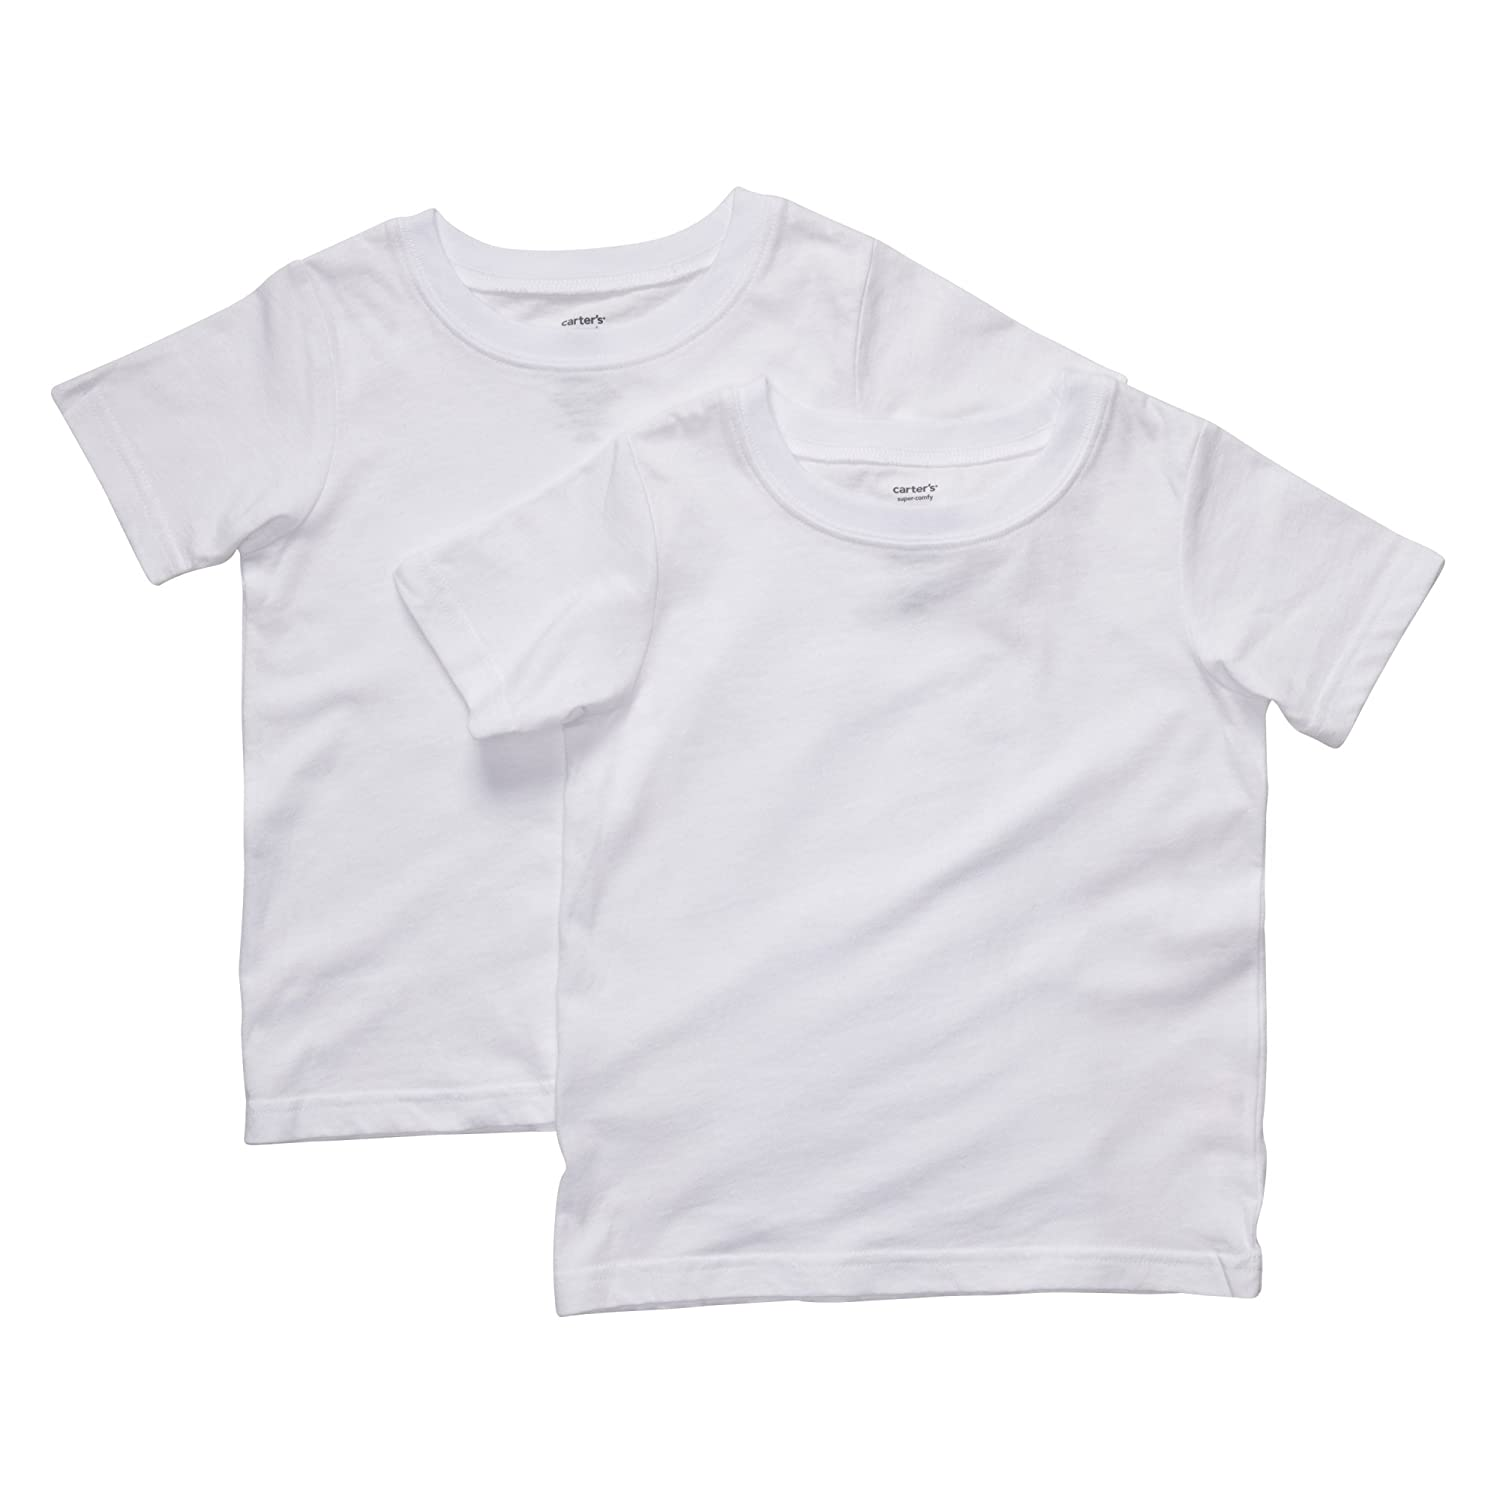 Carter's Boys 2-pack Short-sleeve Cotton Tee Set (4T/5T, White)